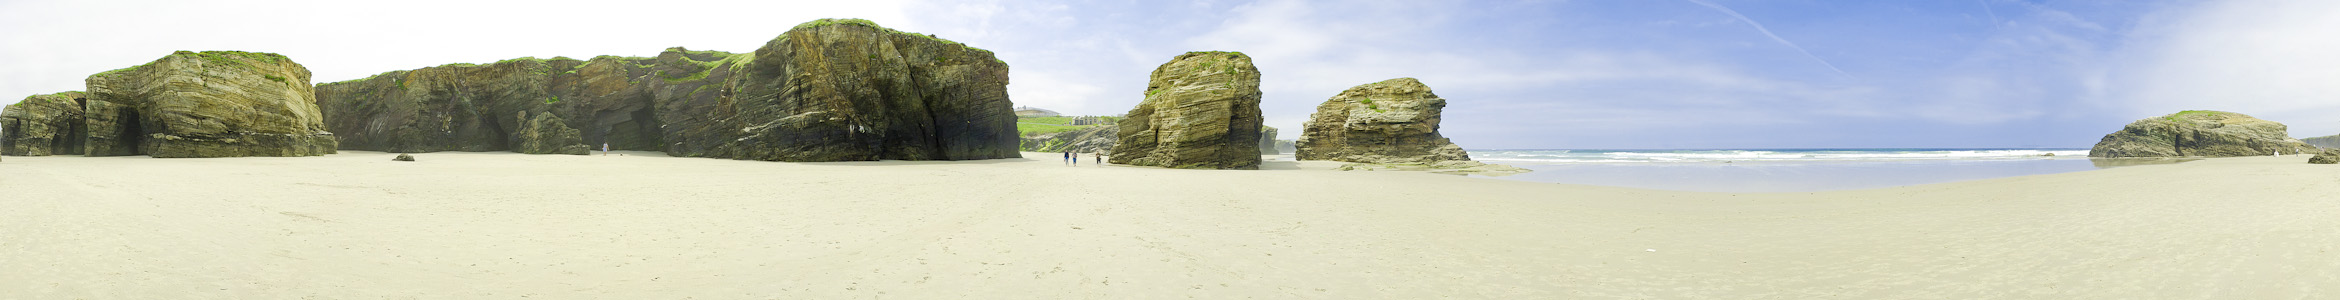 Pano6 Playa Catedrales - 4479x574_